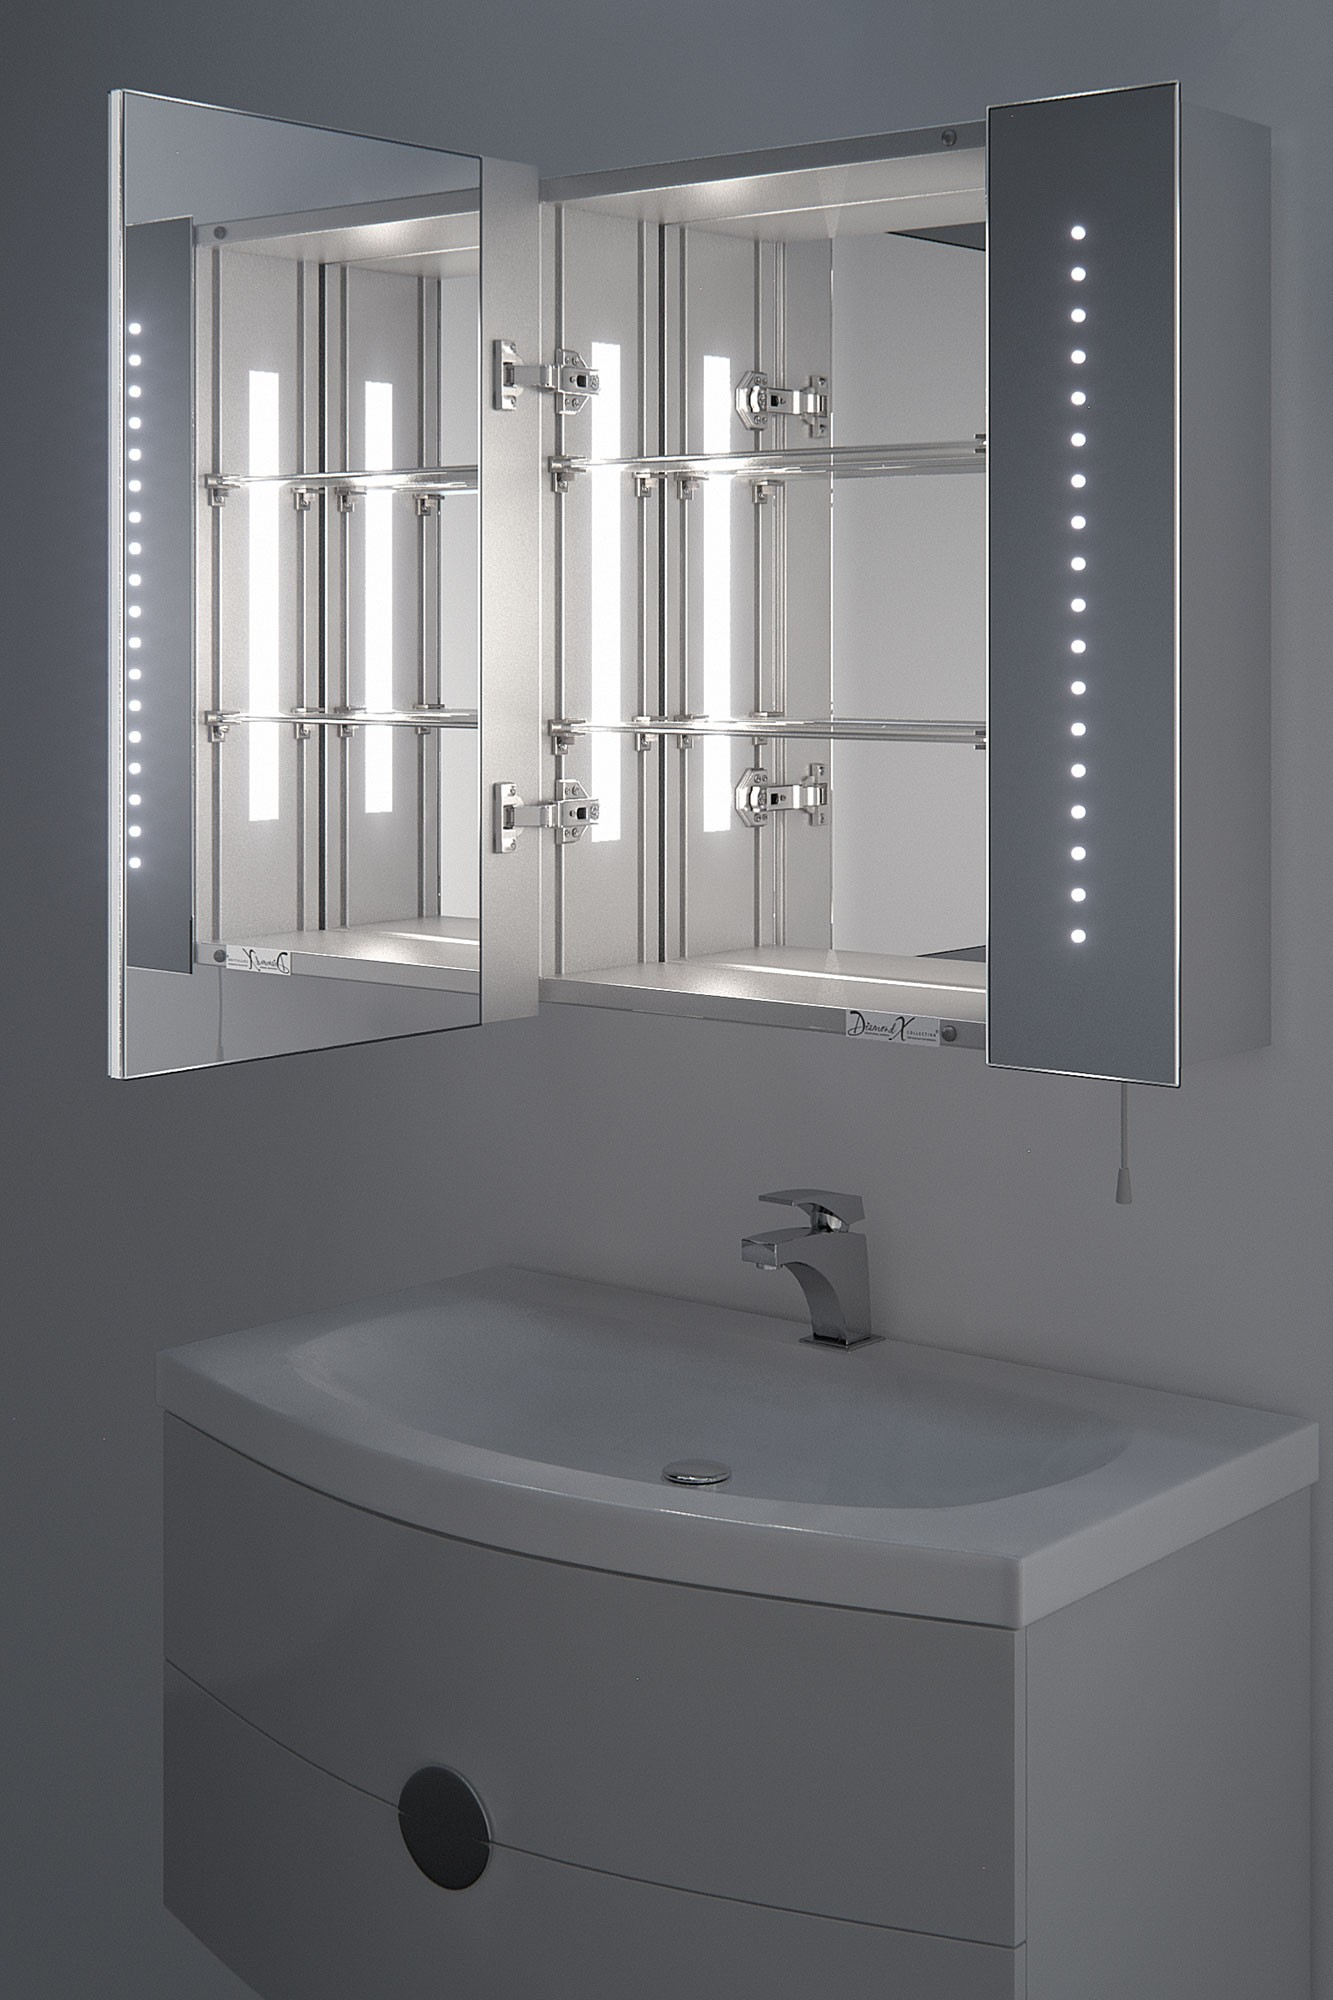 High Quality ... Bathroom Mirrors Battery Operated Mirror Cabinet Regal Battery Led Cab  ...